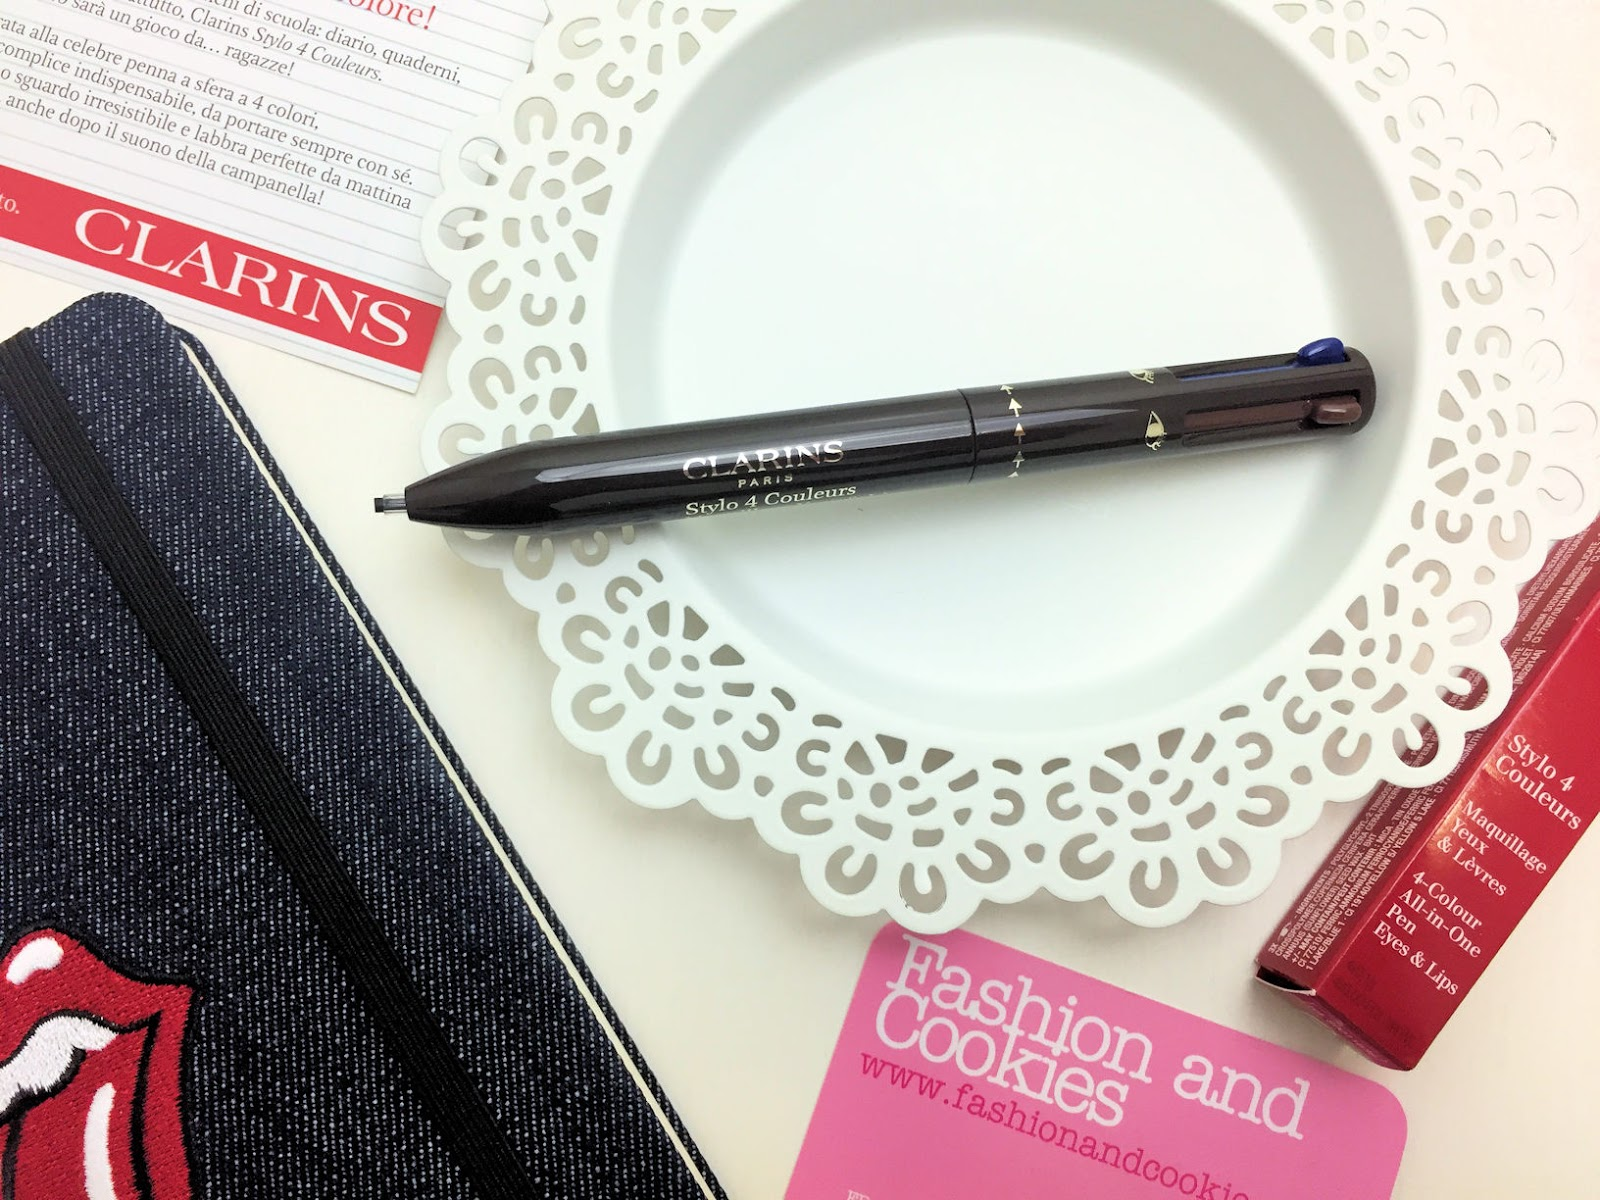 Clarins Stylo 4 Couleurs: penna makeup occhi labbra a 4 colori su Fashion and Cookies beauty blog, beauty blogger